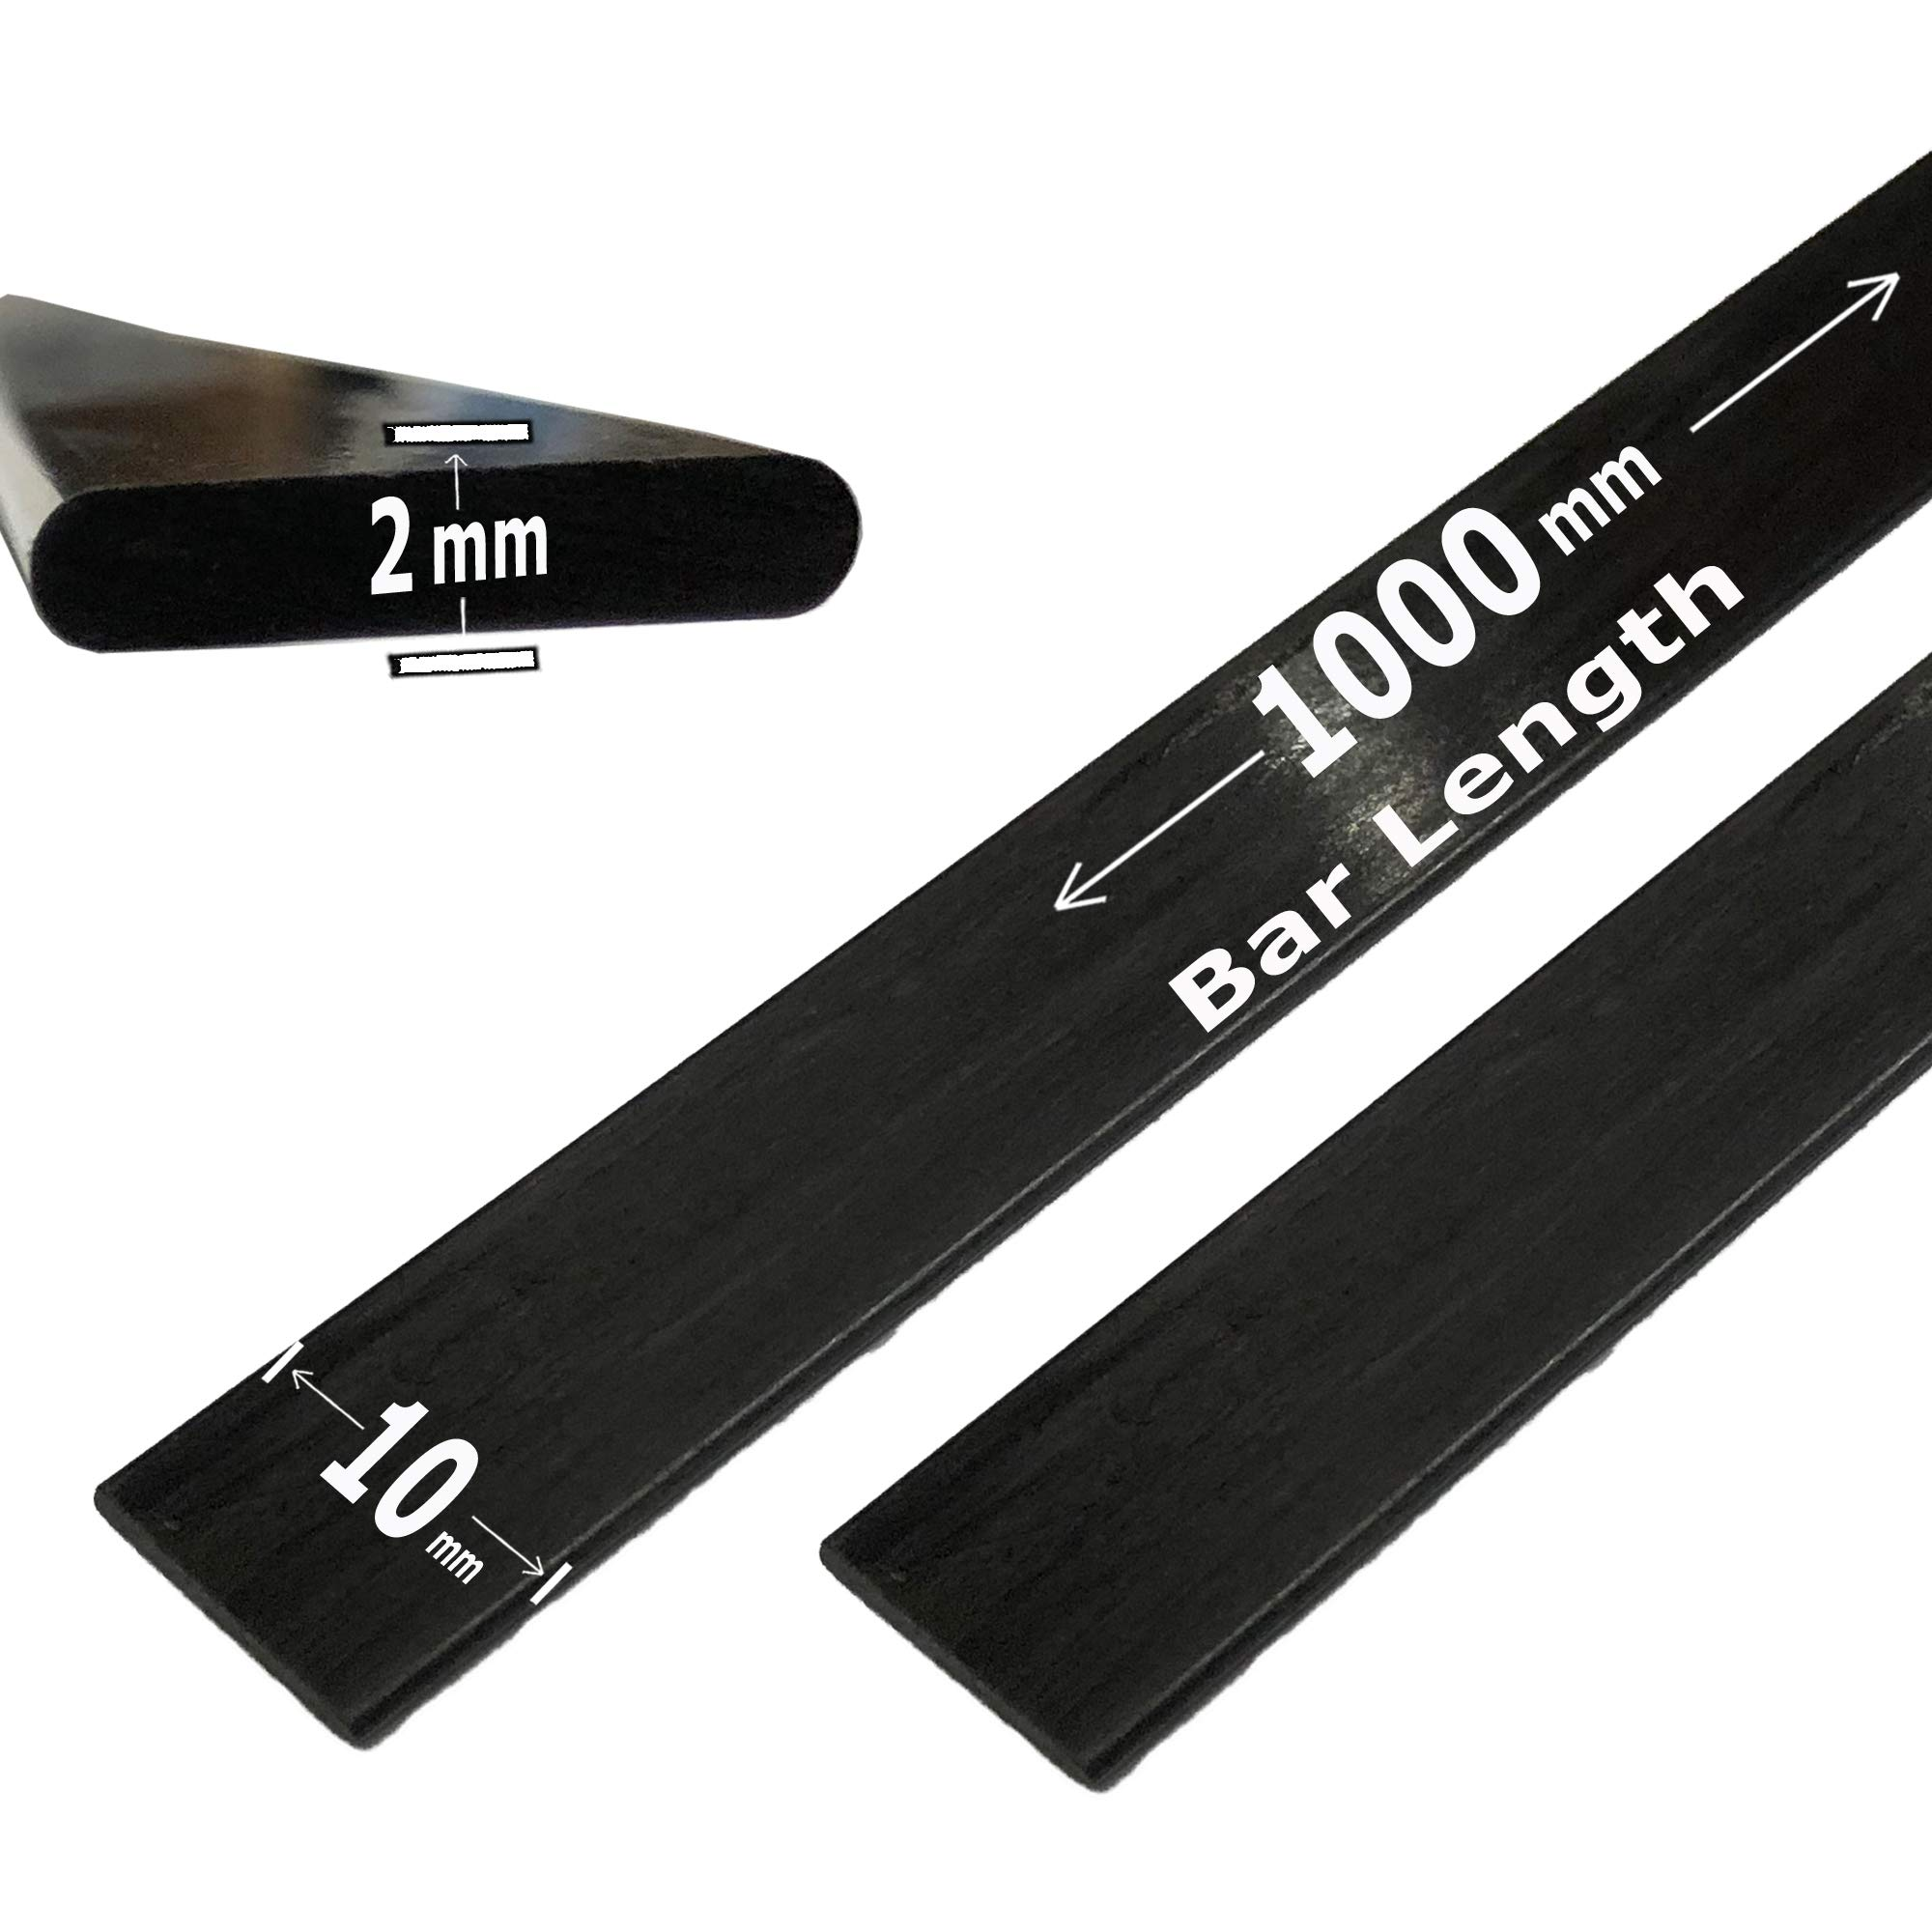 (2) 2mm x 10mm 1000mm - PULTRUDED-Flat Carbon Fiber Bar. 100% Pultruded high Strength Carbon Fiber. Used for Drones, Radio Controlled Vehicles. Projects requiring high Strength Components